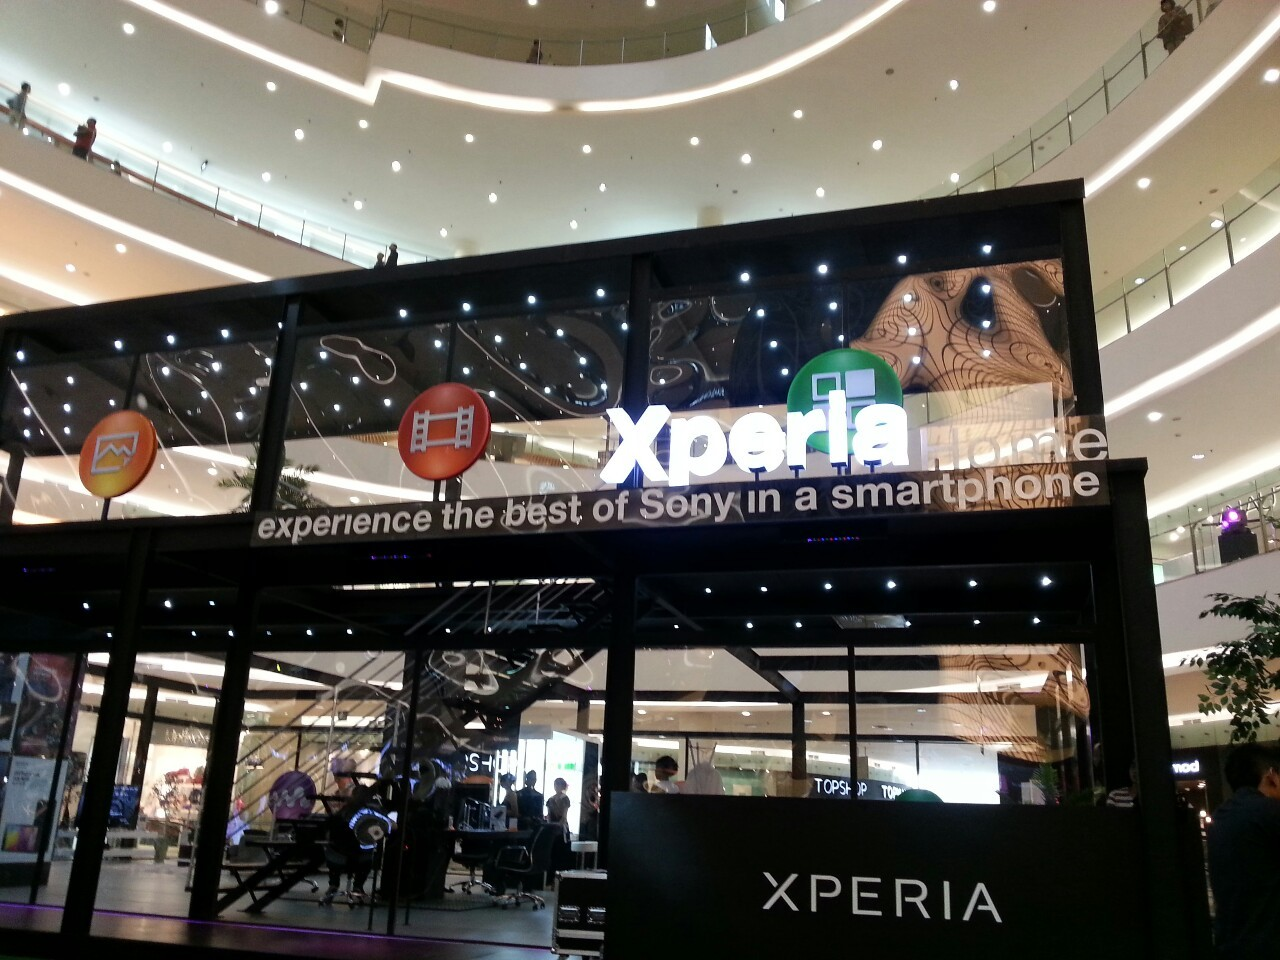 SONY Experia experience the best of sony in a smartphone